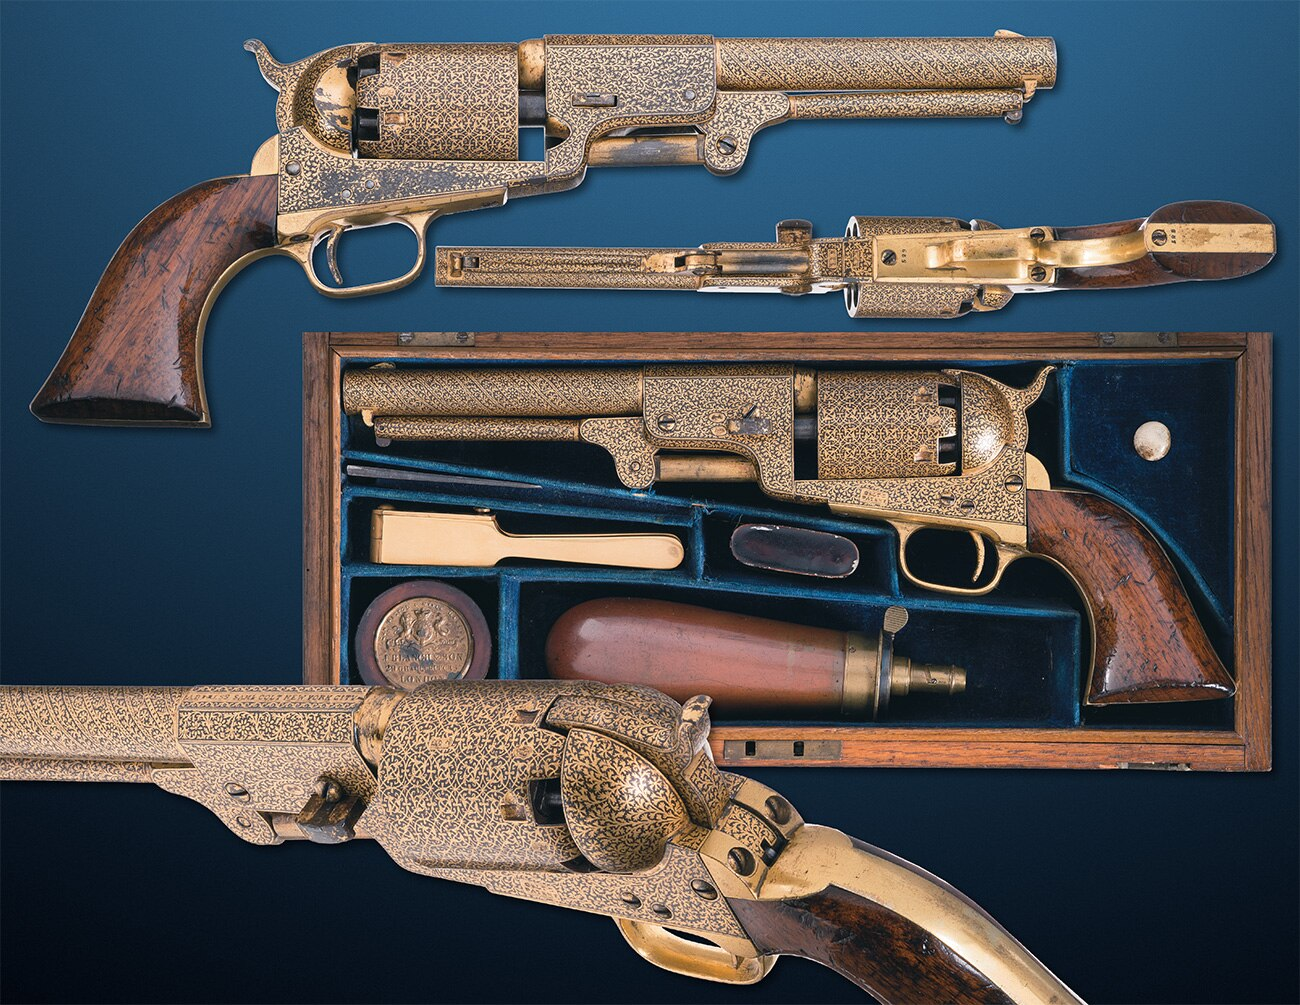 This Colt Third Model Hartford London Dragoon is a heavy .44, and has seen some use over the years, but is still heavily decorated in gold damascene. With SN#529, it is one of just 700 made by Colt for sale in England between 1853 and 1857. Estimated Price: $30,000 - $45,000. RIA also has a very similar https://www.rockislandauction.com/detail/71/102/colt-model-1851-navy-revolver-london#detail .36 caliber London Colt Navy up for grabs as well.